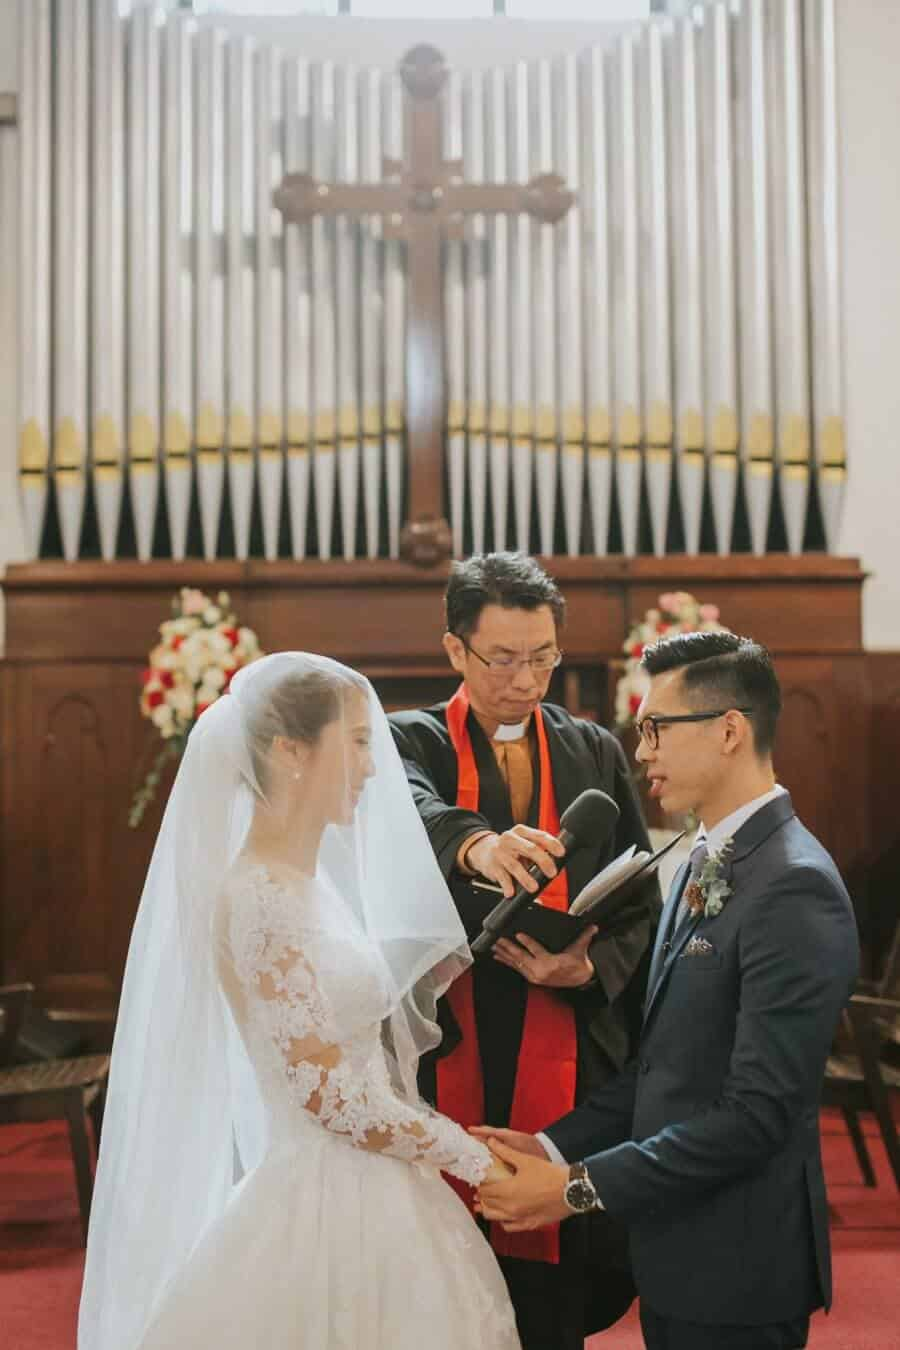 Wedding St. Andrew Church Kuala Lumpur Malaysia Destination Cliff Choong Photography bride getting ready makeup lips red white fairy tail beautiful wedding gown dress Classic Simple elegant